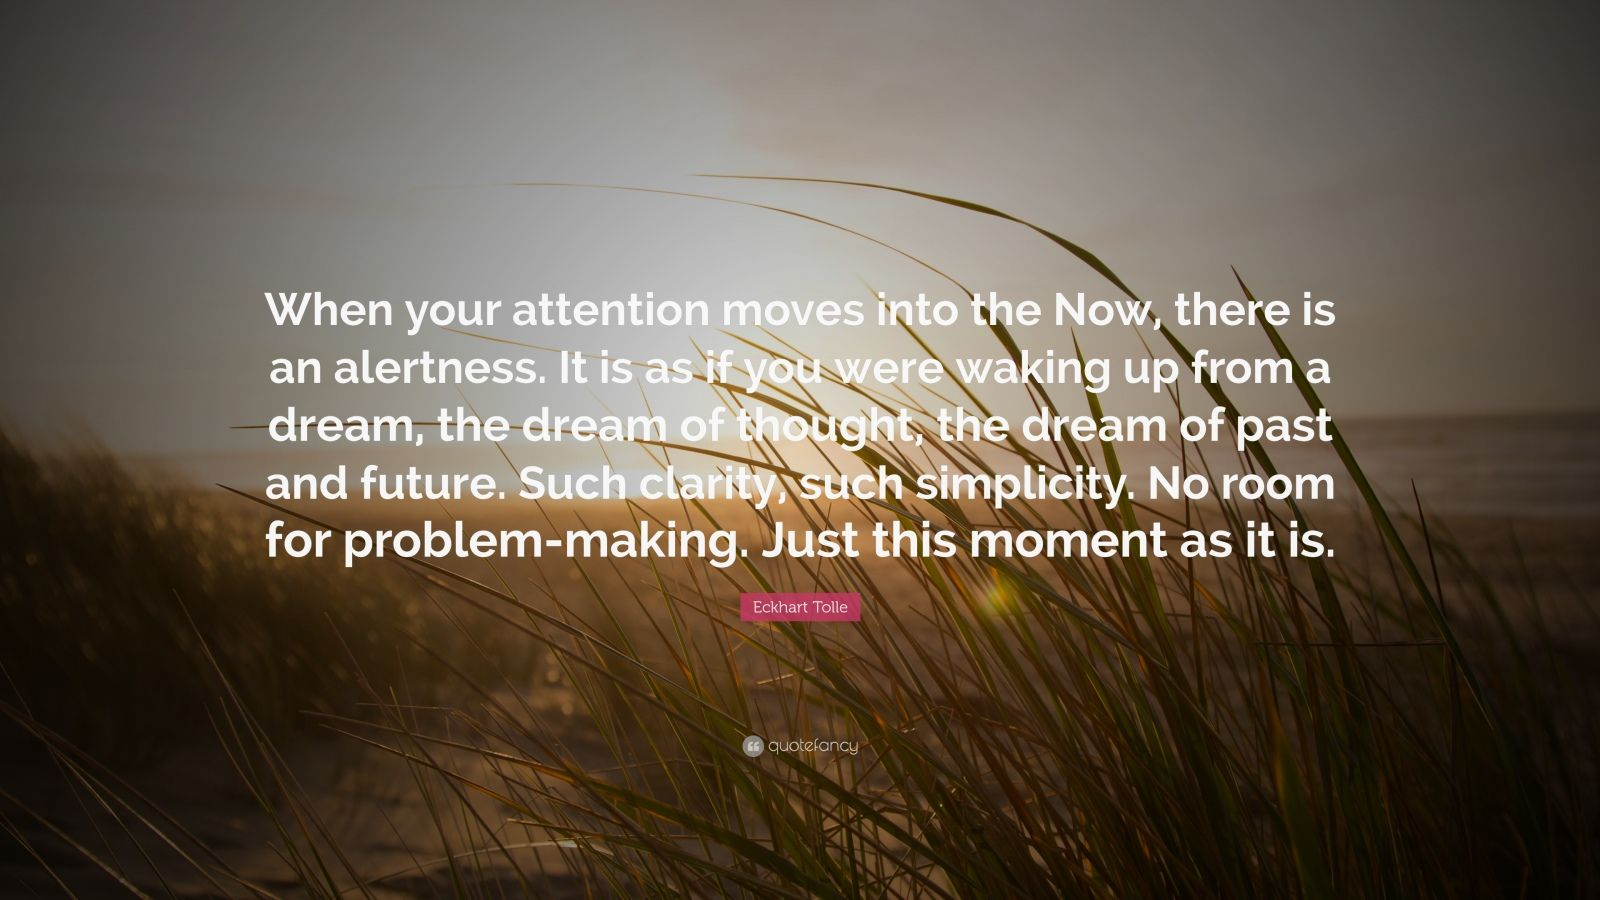 "Eckhart Tolle Quote: ""When your attention moves into the Now, there is an alertness. It is as if you were waking up from a dream, the dream of thought, the dream of past and future. Such clarity, such simplicity. No room for problem-making. Just this moment as it is."""